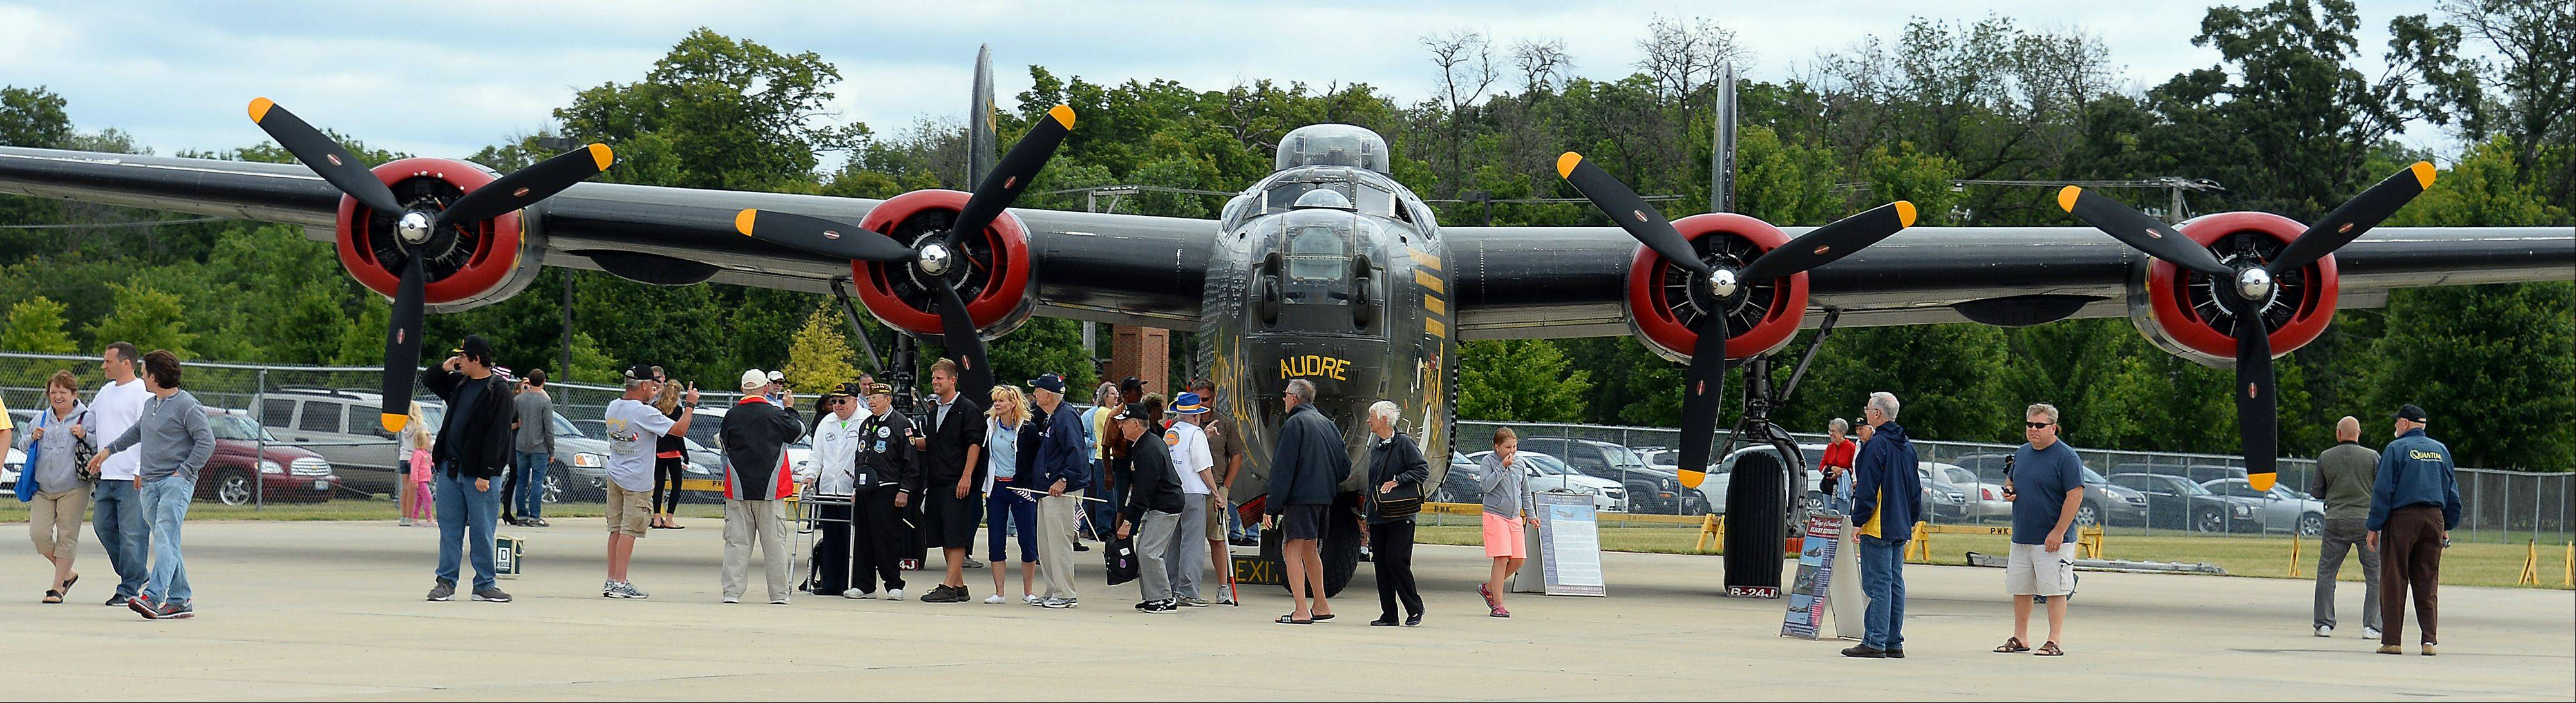 Long lines of people wait to check out the B-24 Liberator which landed at Chicago Executive Airport on Saturday as part of the 2013 Wings of Freedom Tour.